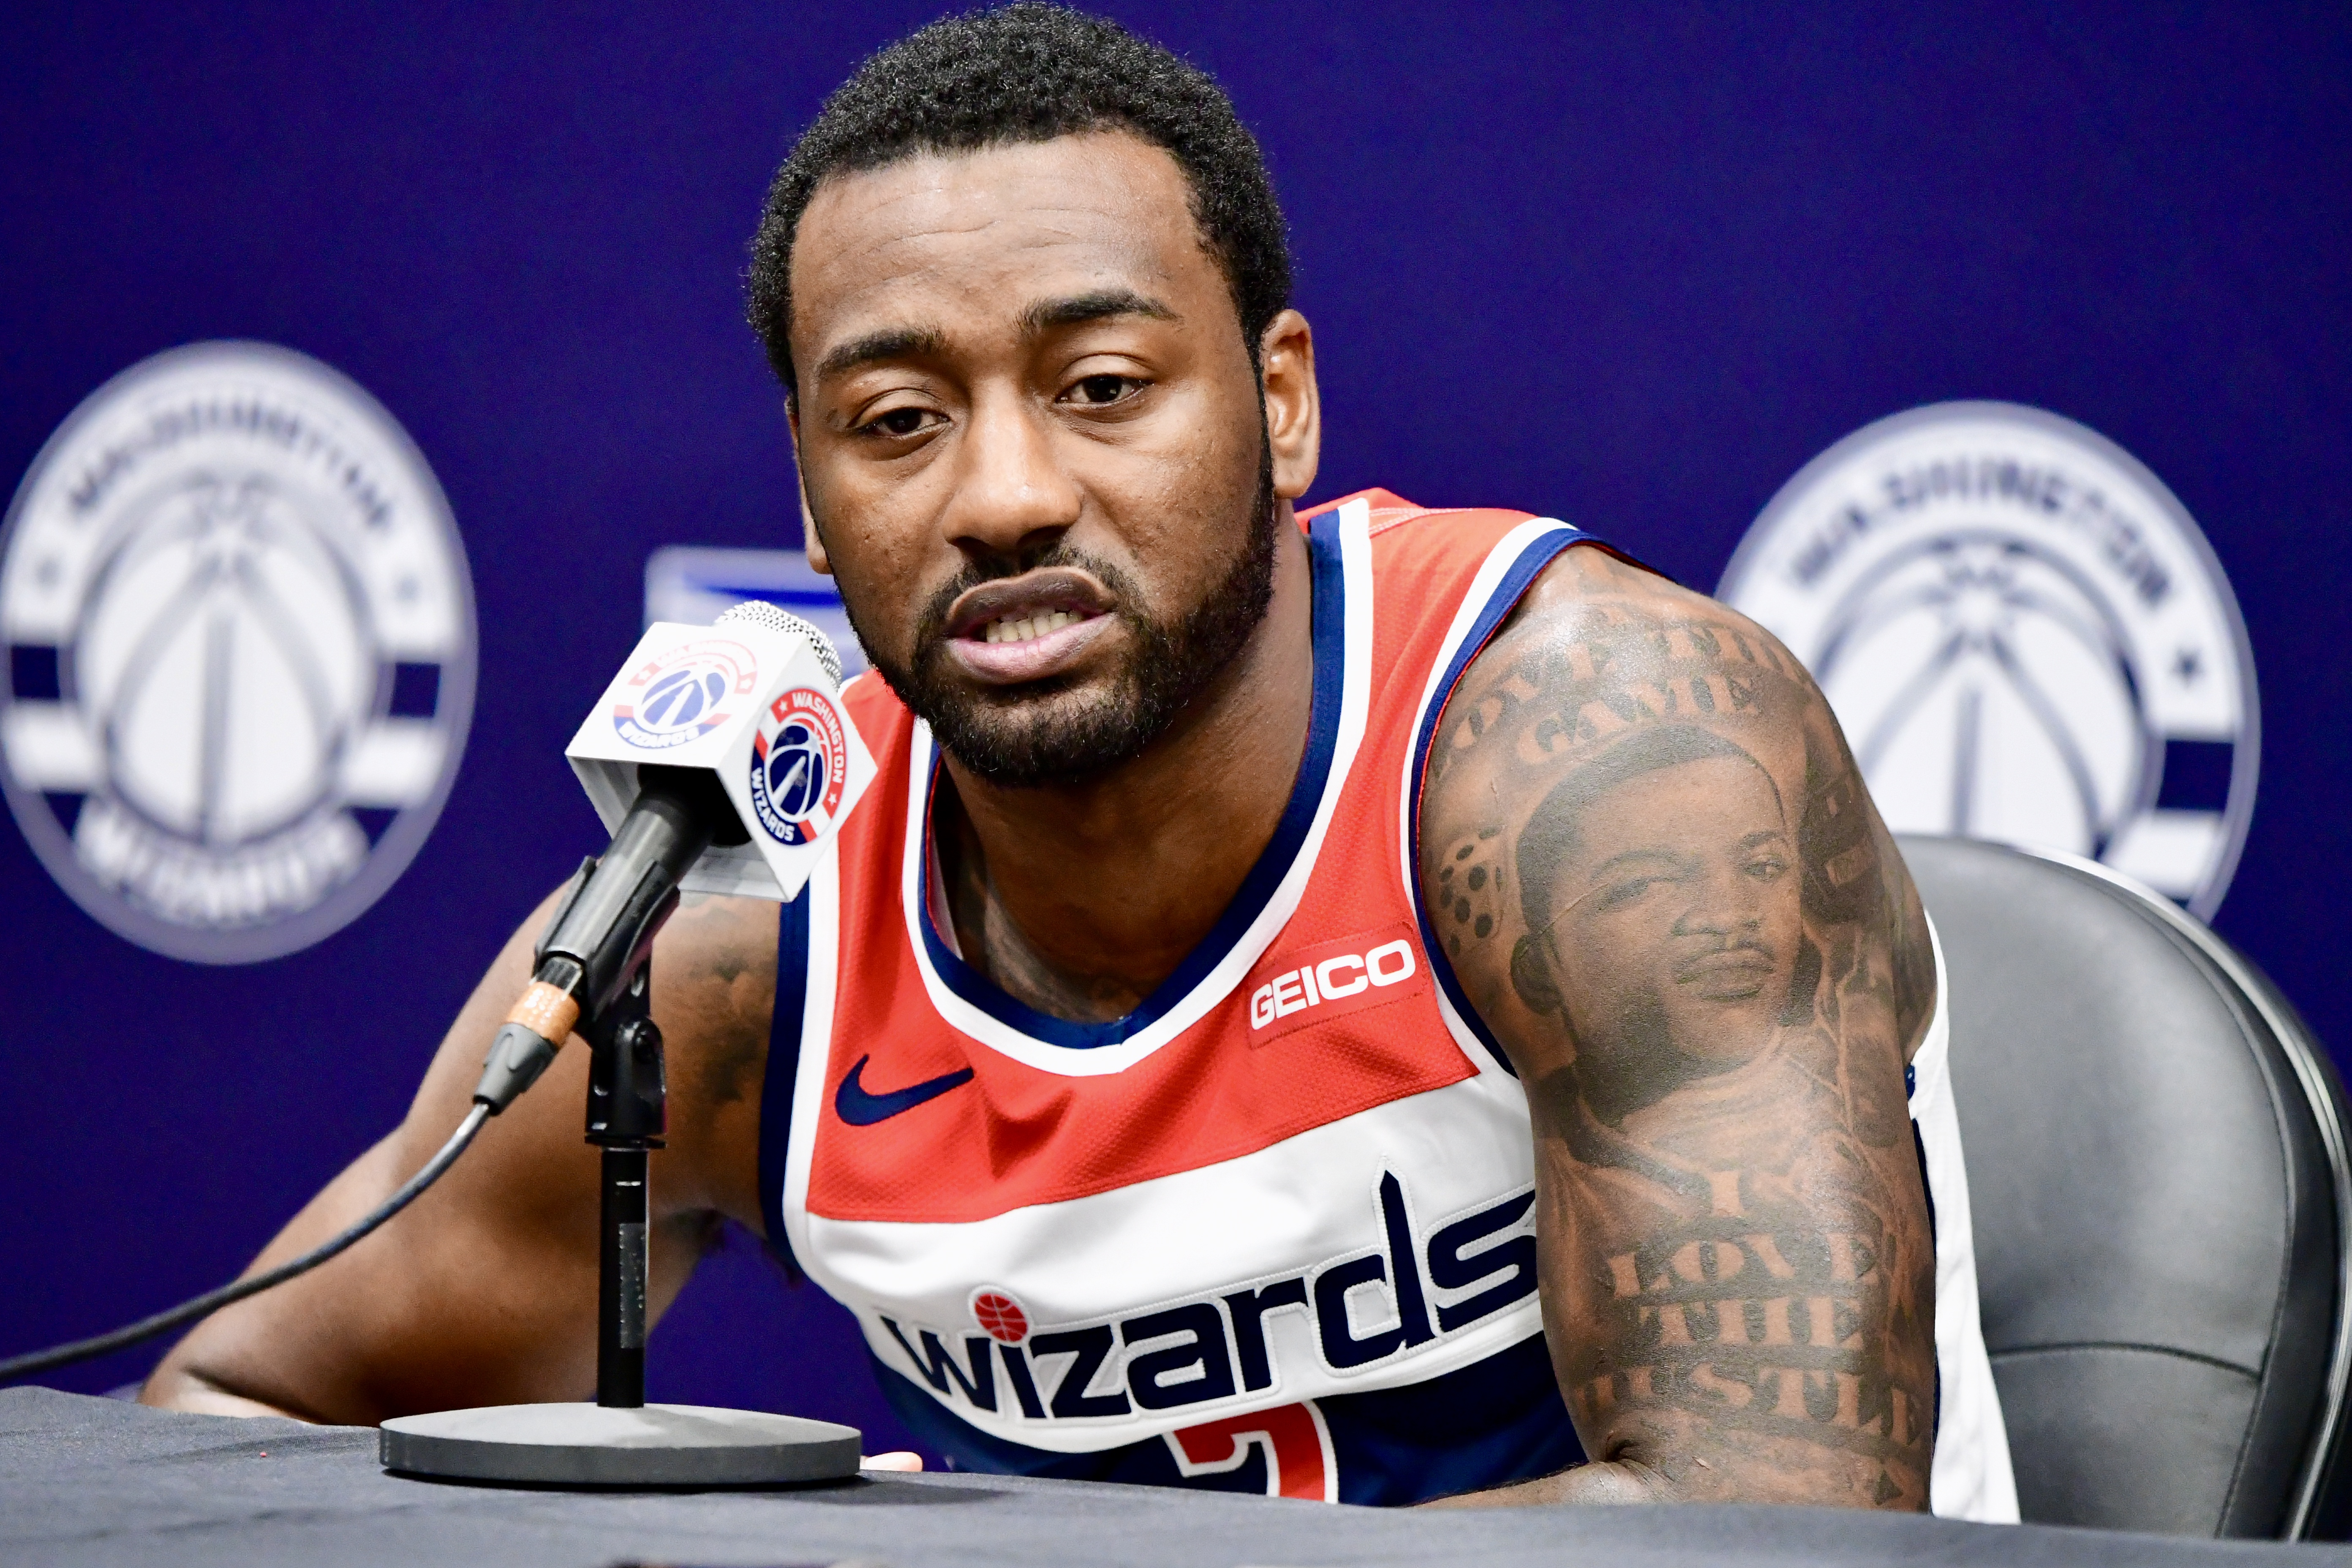 The 31-year old son of father John Carroll Wall, Sr. and mother Frances Pulley John Wall in 2021 photo. John Wall earned a 7.4 million dollar salary - leaving the net worth at 22 million in 2021